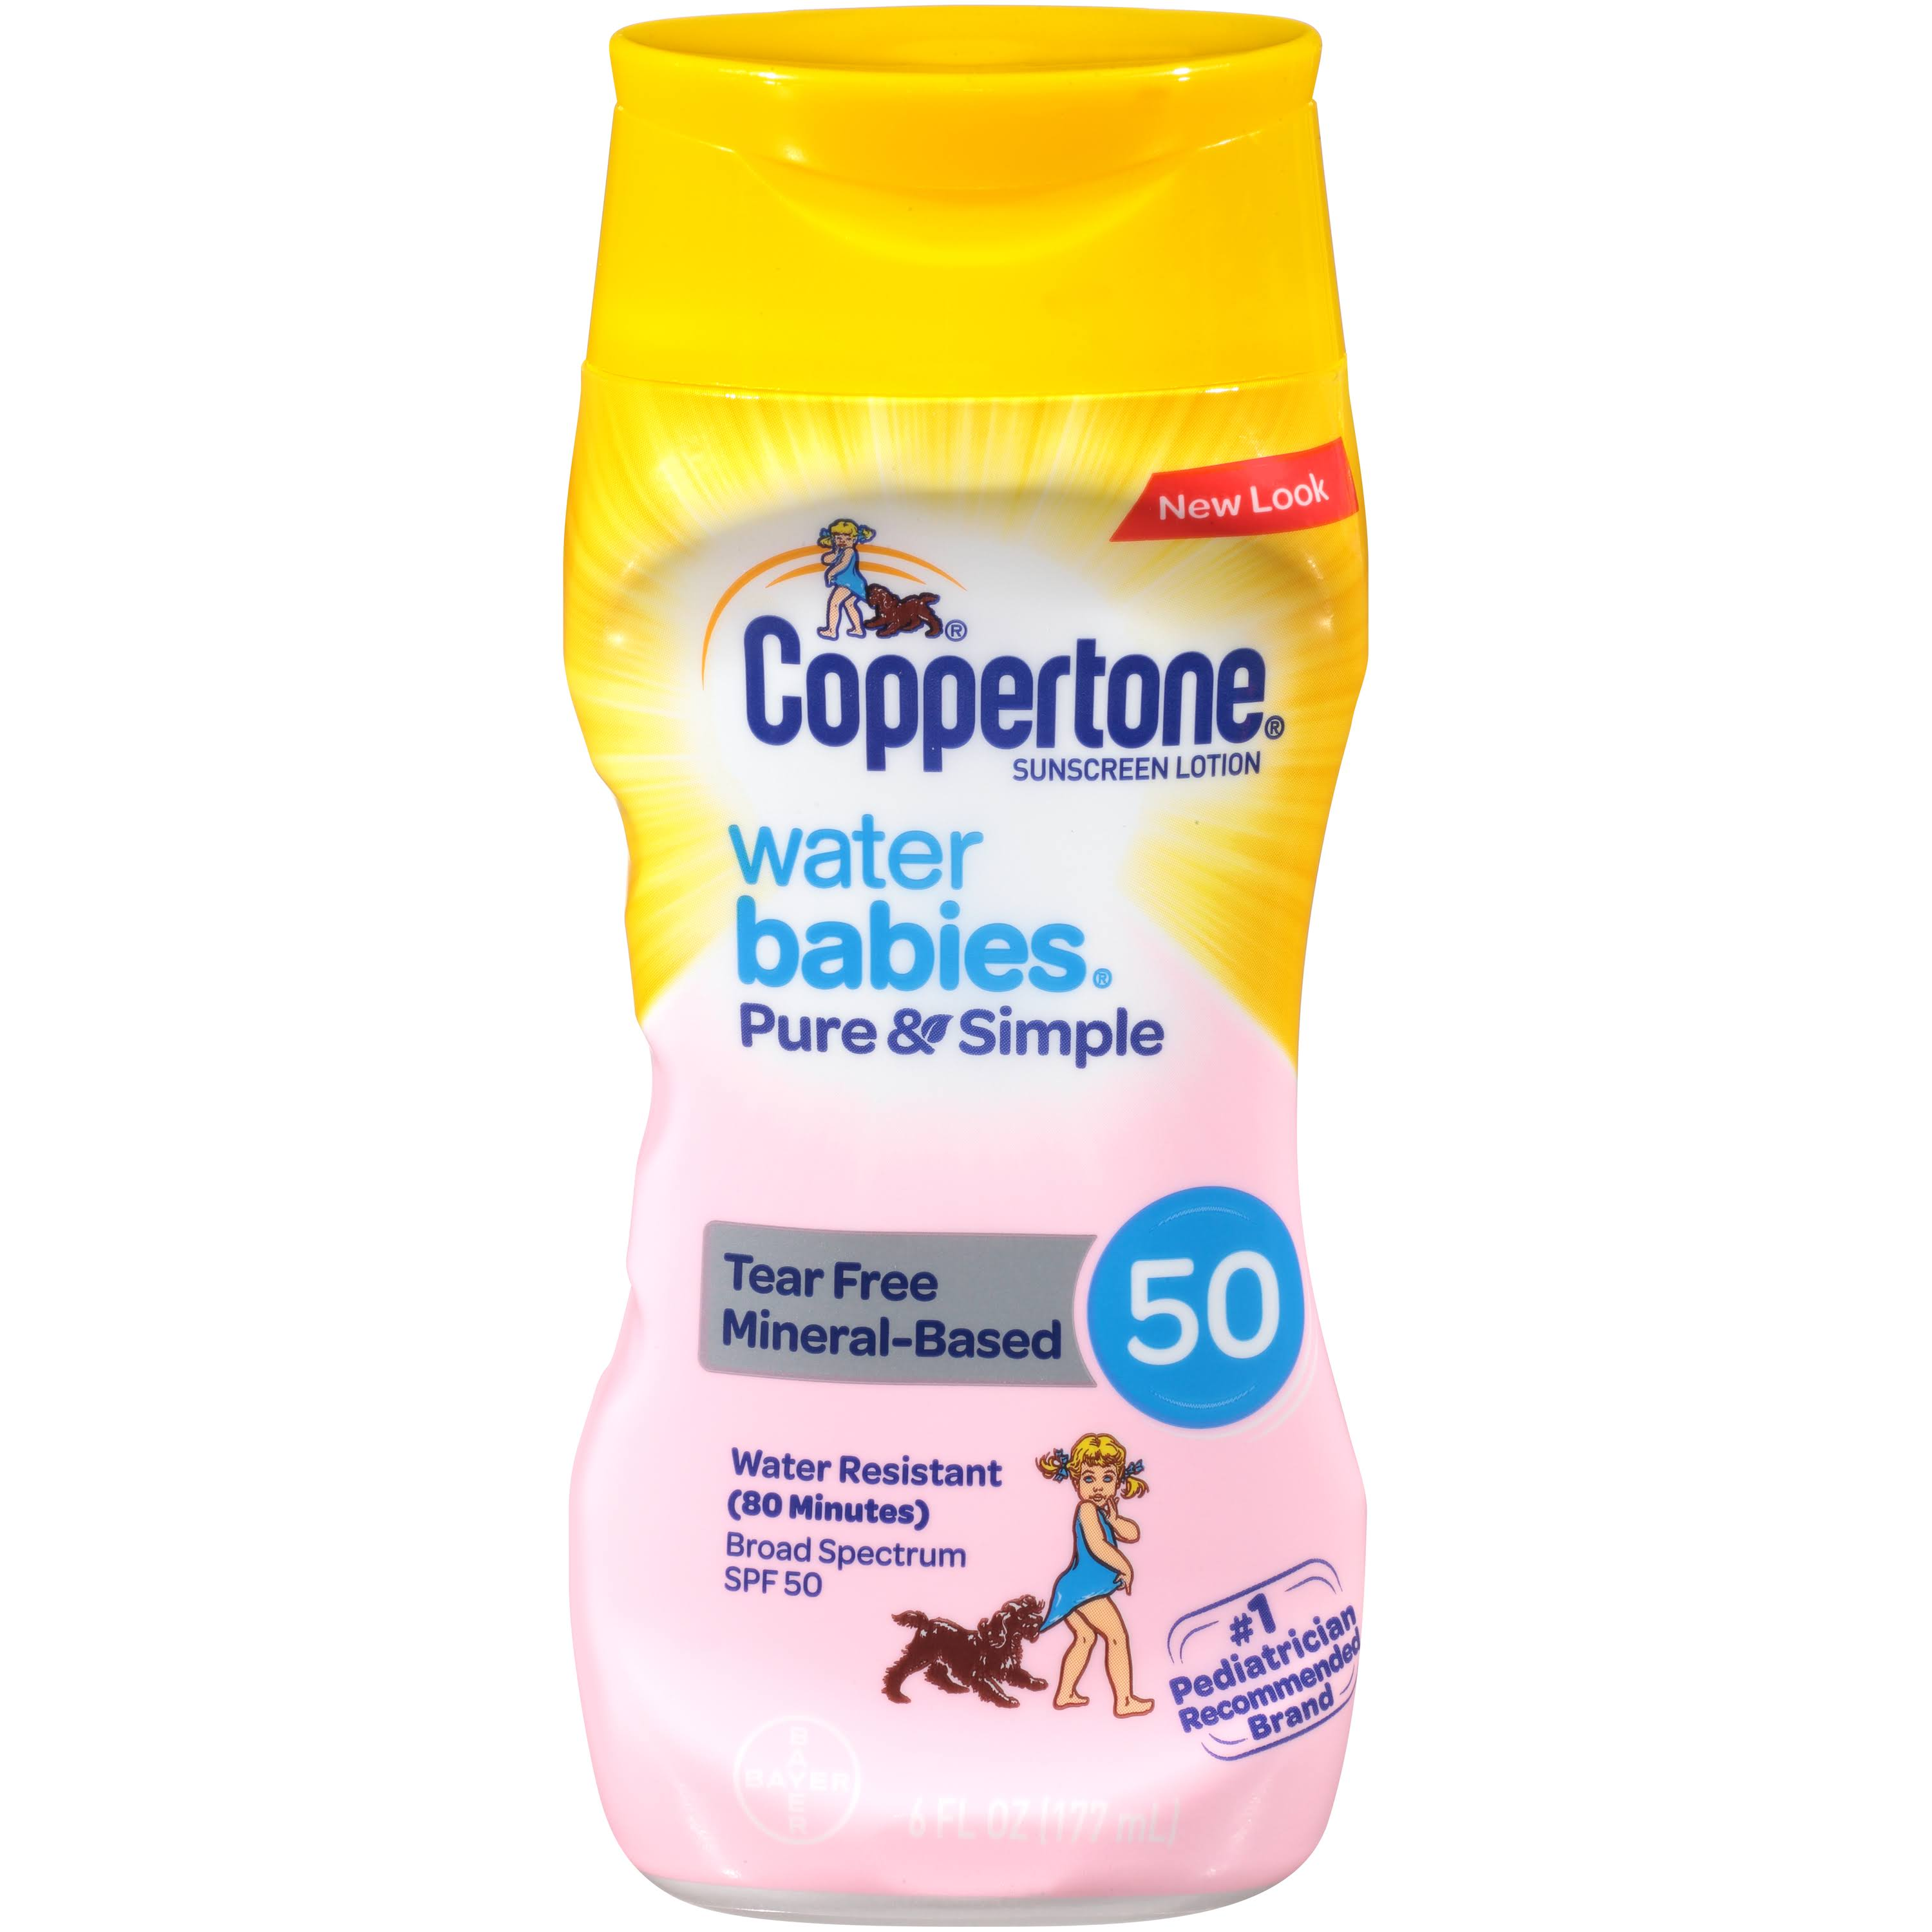 Coppertone Water Babies Pure and Simple Sunscreen Lotion - SPF 50, 6oz